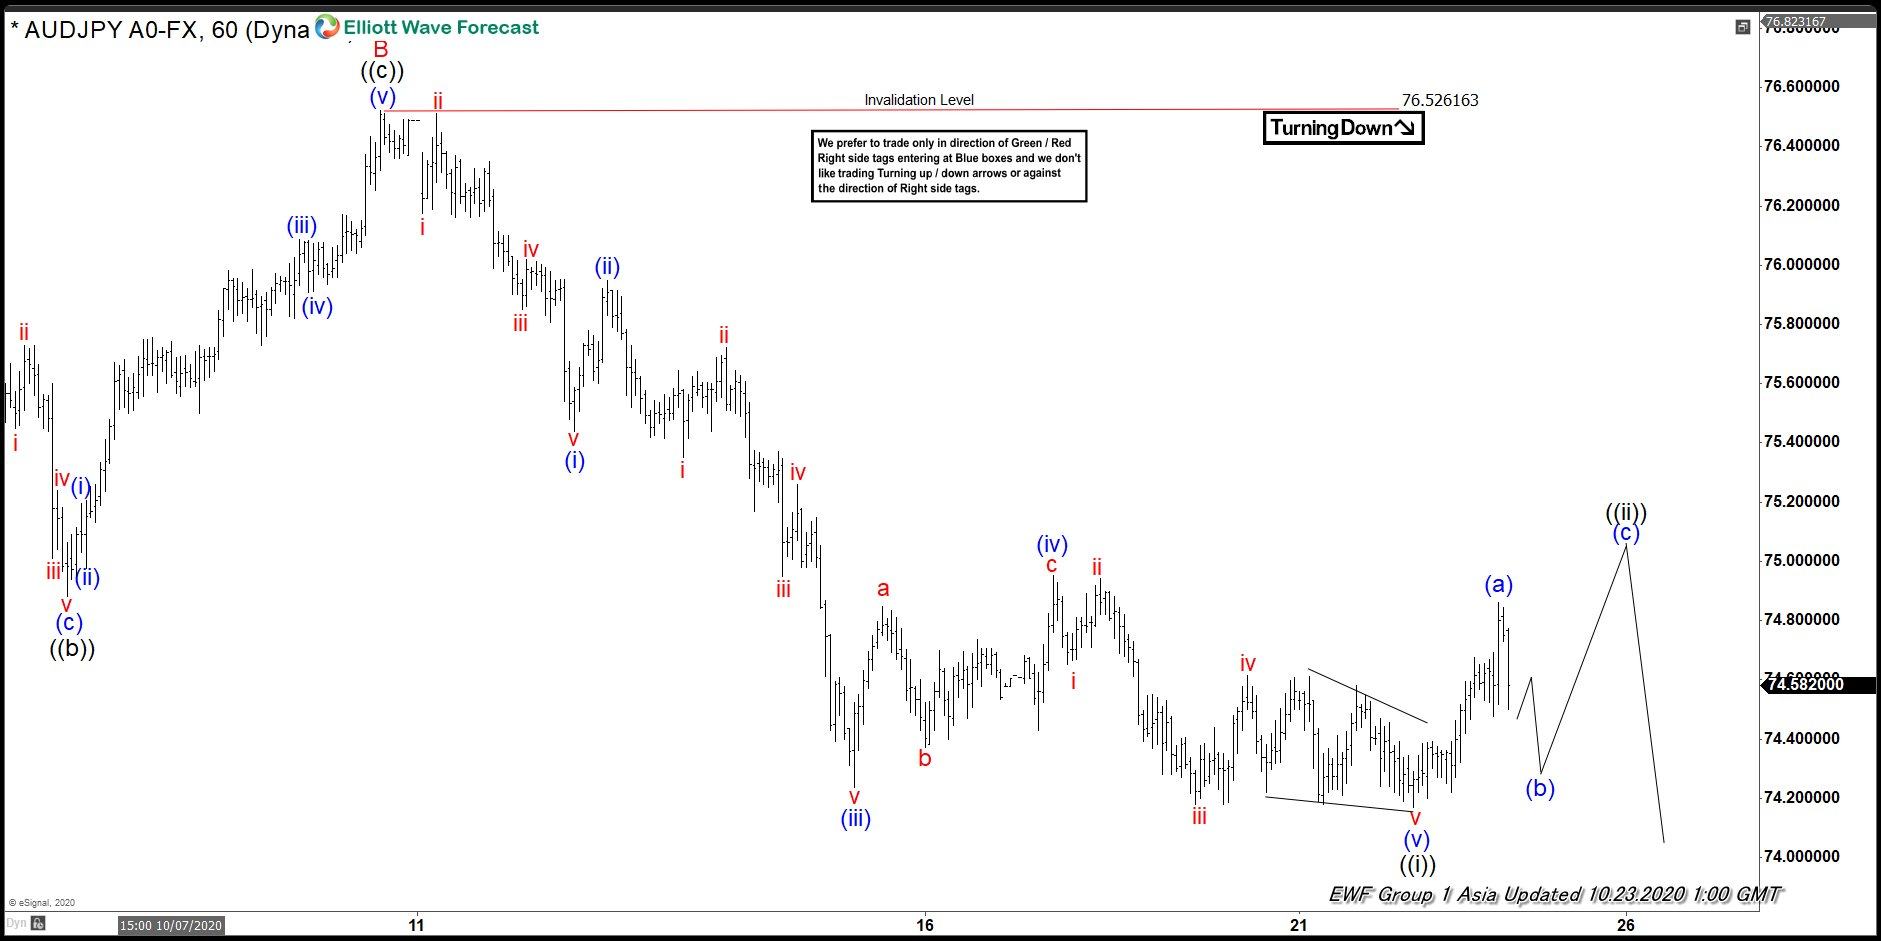 AUDJPY Forecasting The Decline Based in Elliott Wave Structure